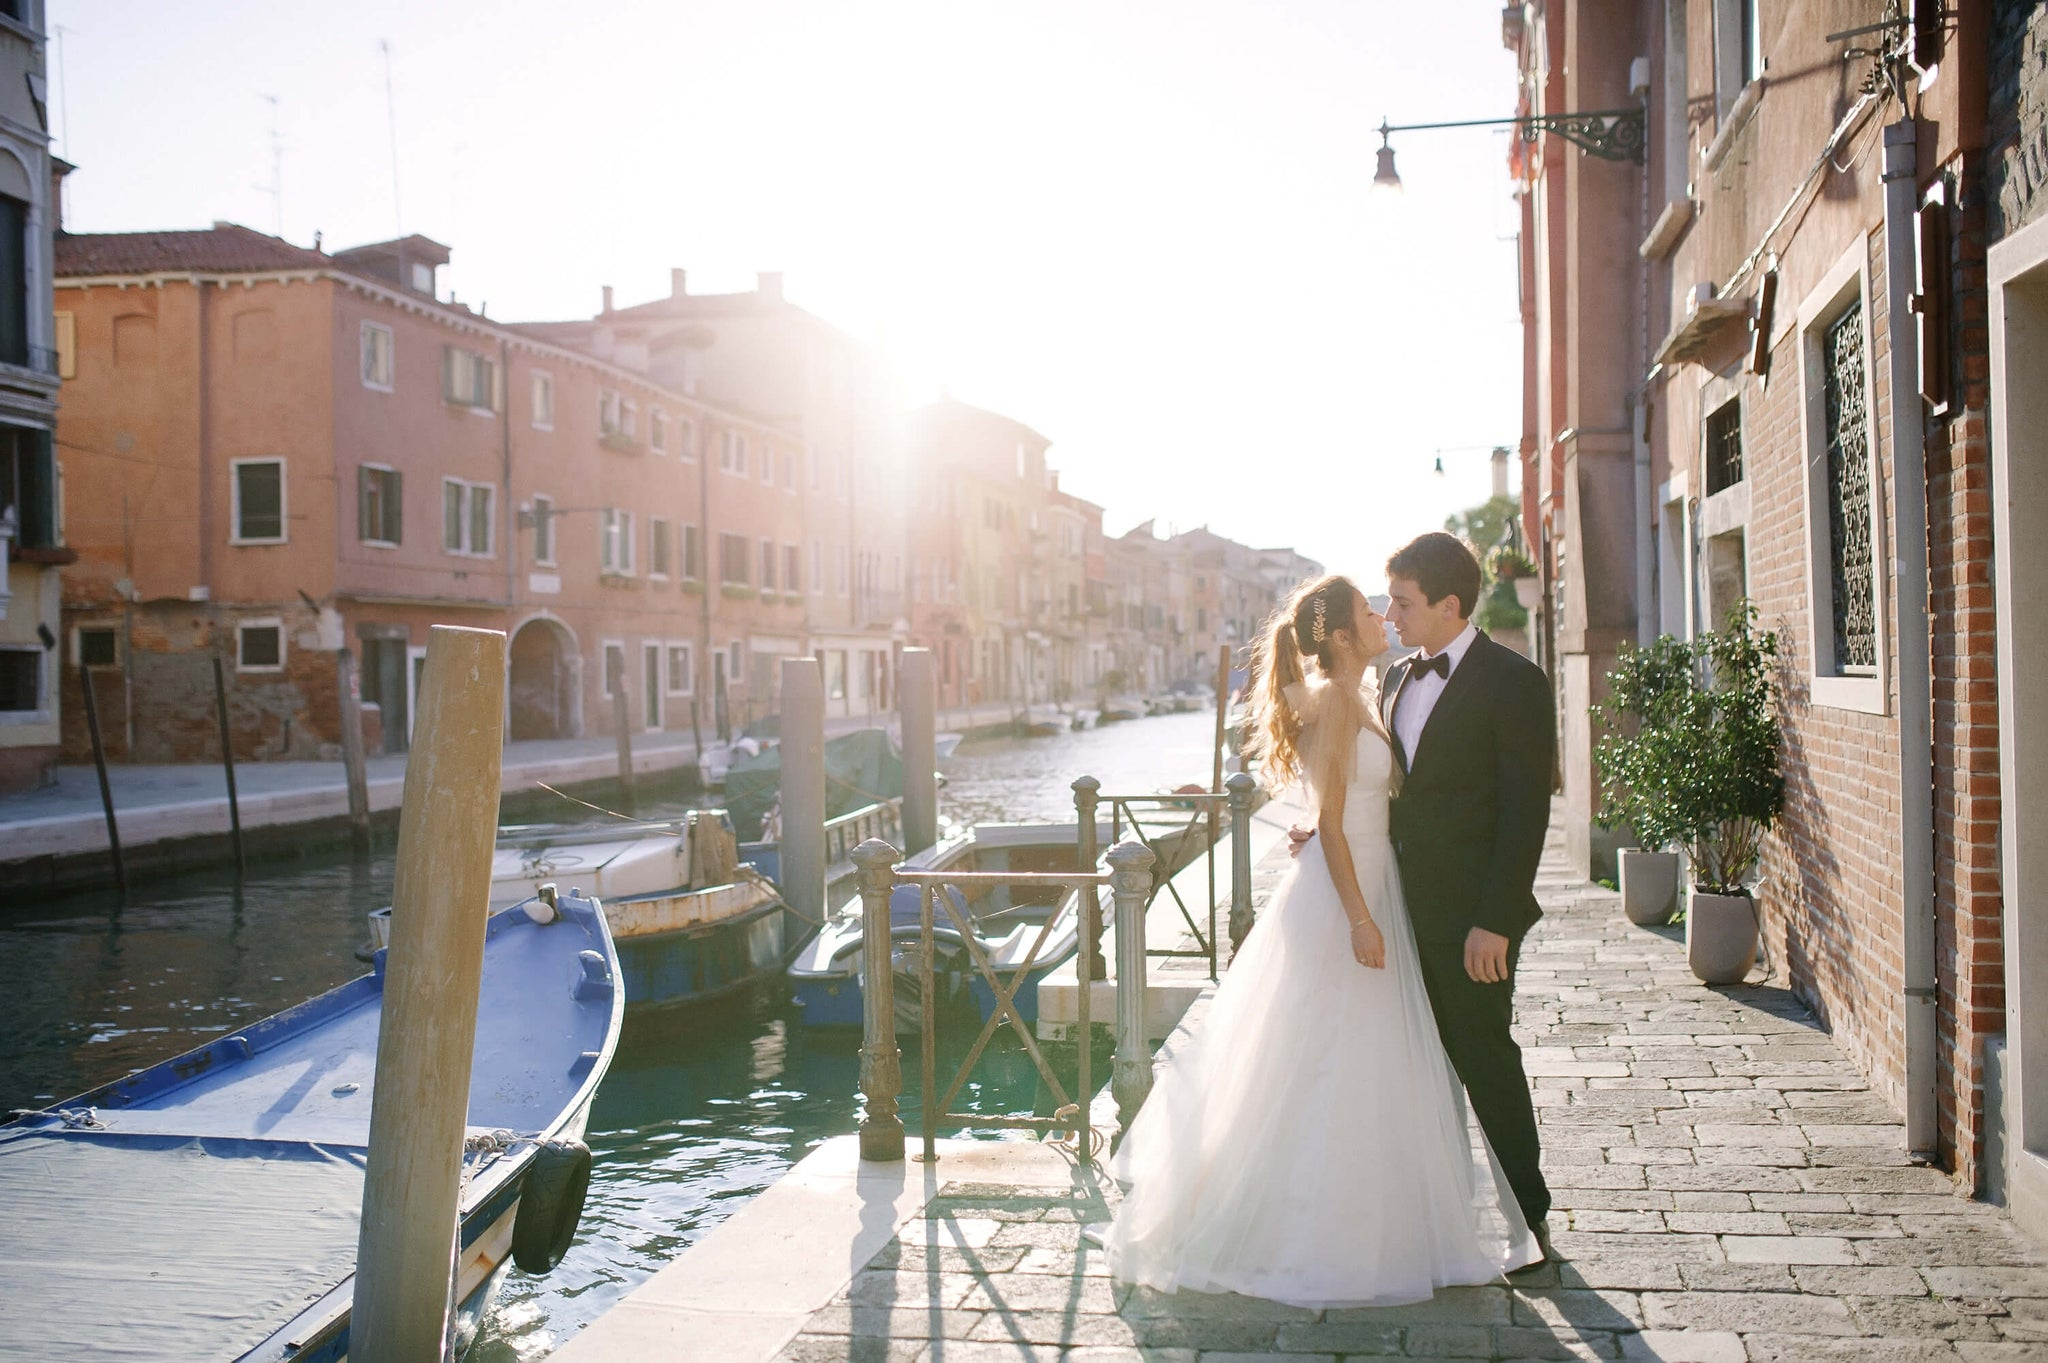 Bride and groom in a sunny day in Venice - destination wedding